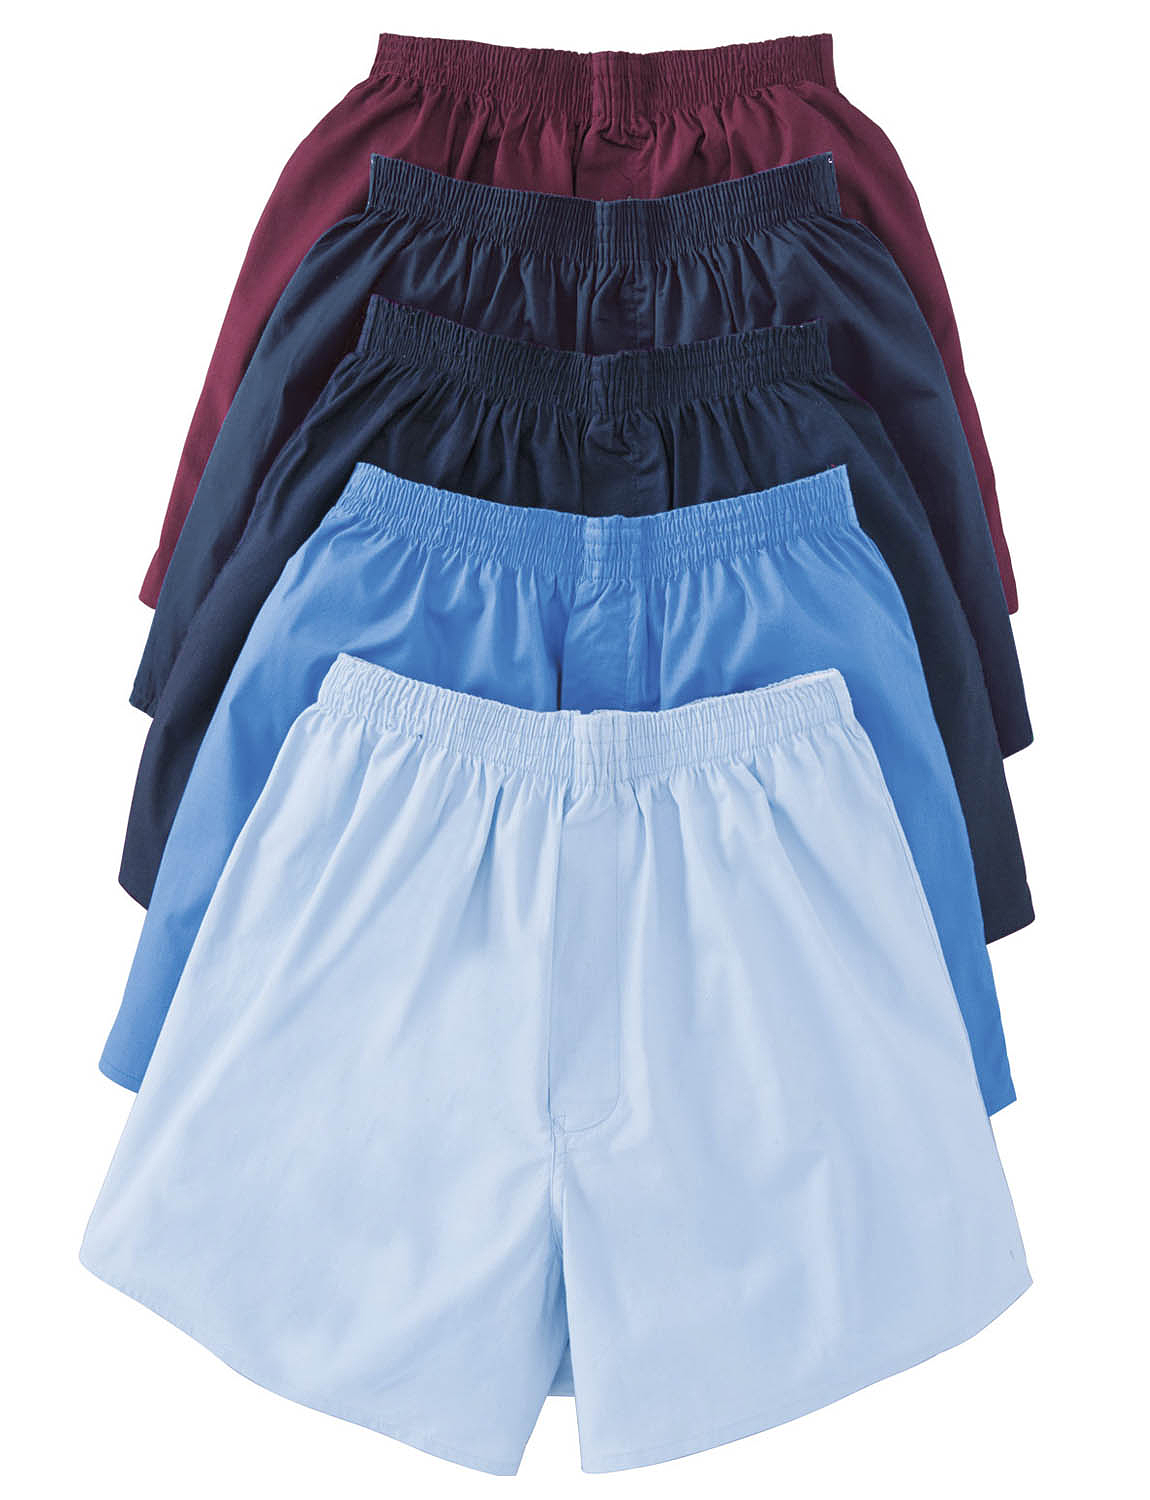 Pack of 5 Plain Boxers - Assorted